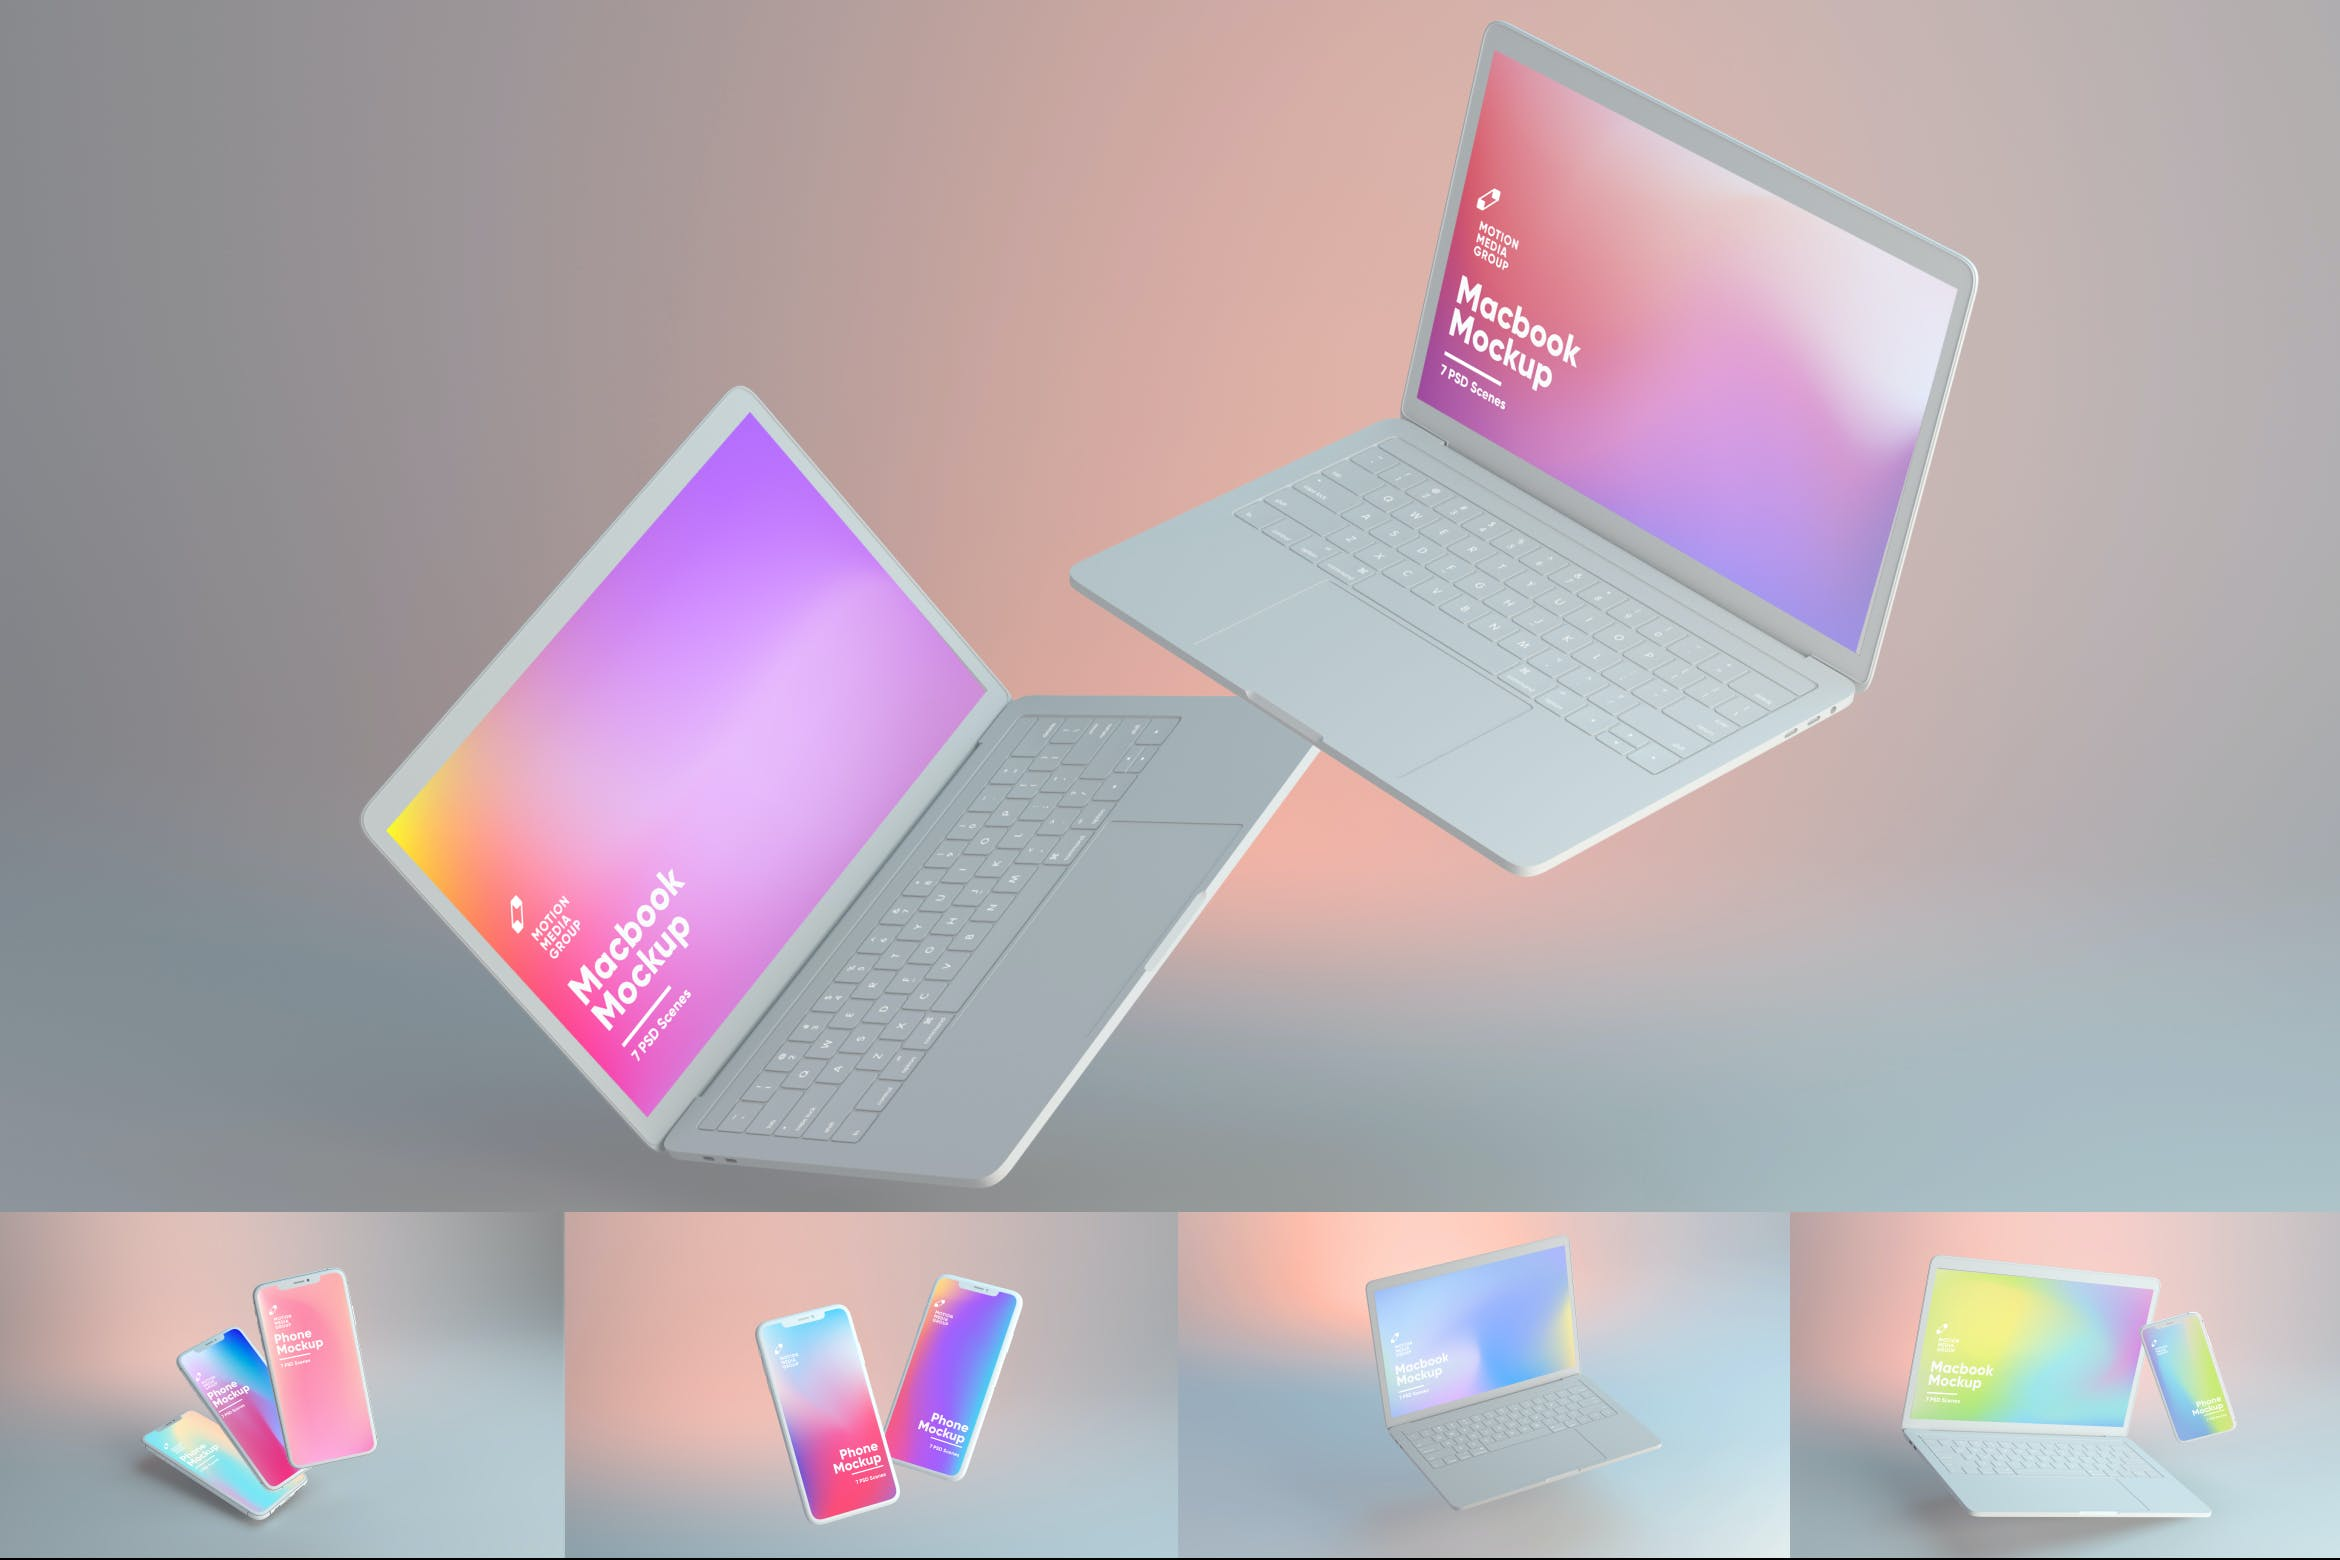 <span class='yzk_title_113907'>漏光效果iPhone&MacBook设备屏幕预览样机模板 Light Leaks Iphone and MacBook Mockups</span>